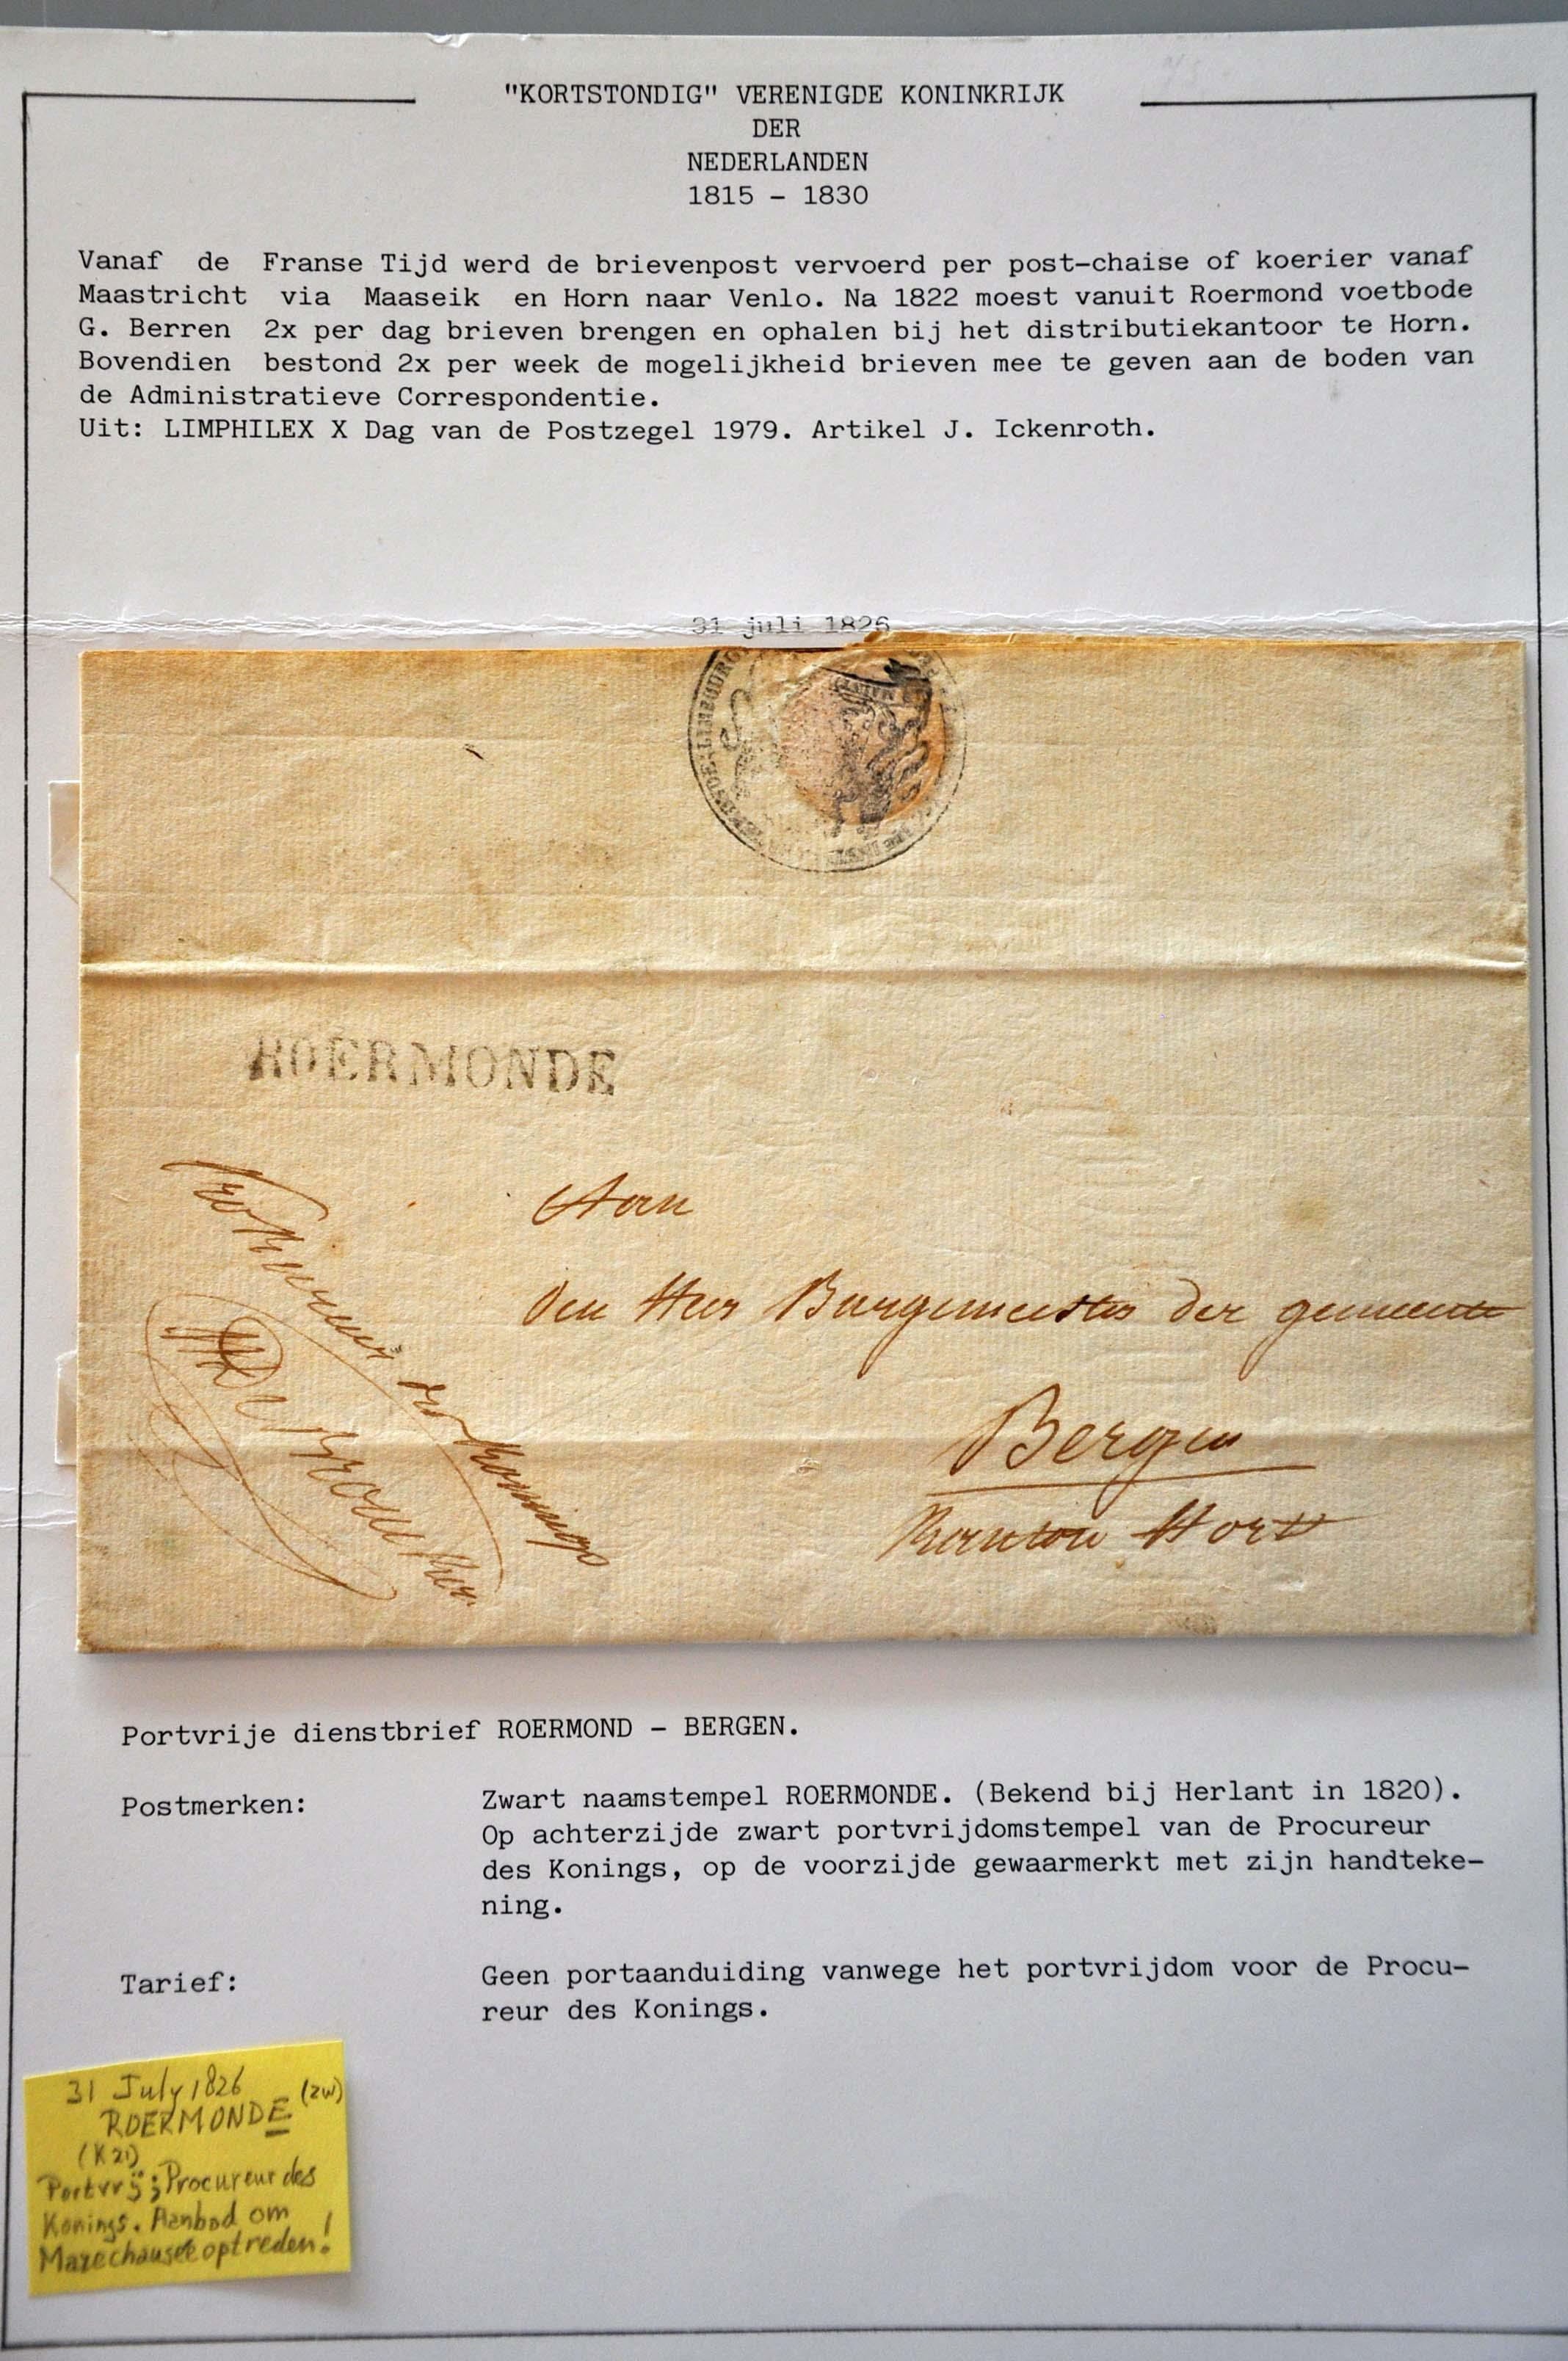 Lot 2347 - Netherlands and former colonies Netherlands -  Corinphila Veilingen Auction 245-246 Day 3 - Netherlands and former colonies - Single lots, Collections and lots, Boxes and literature